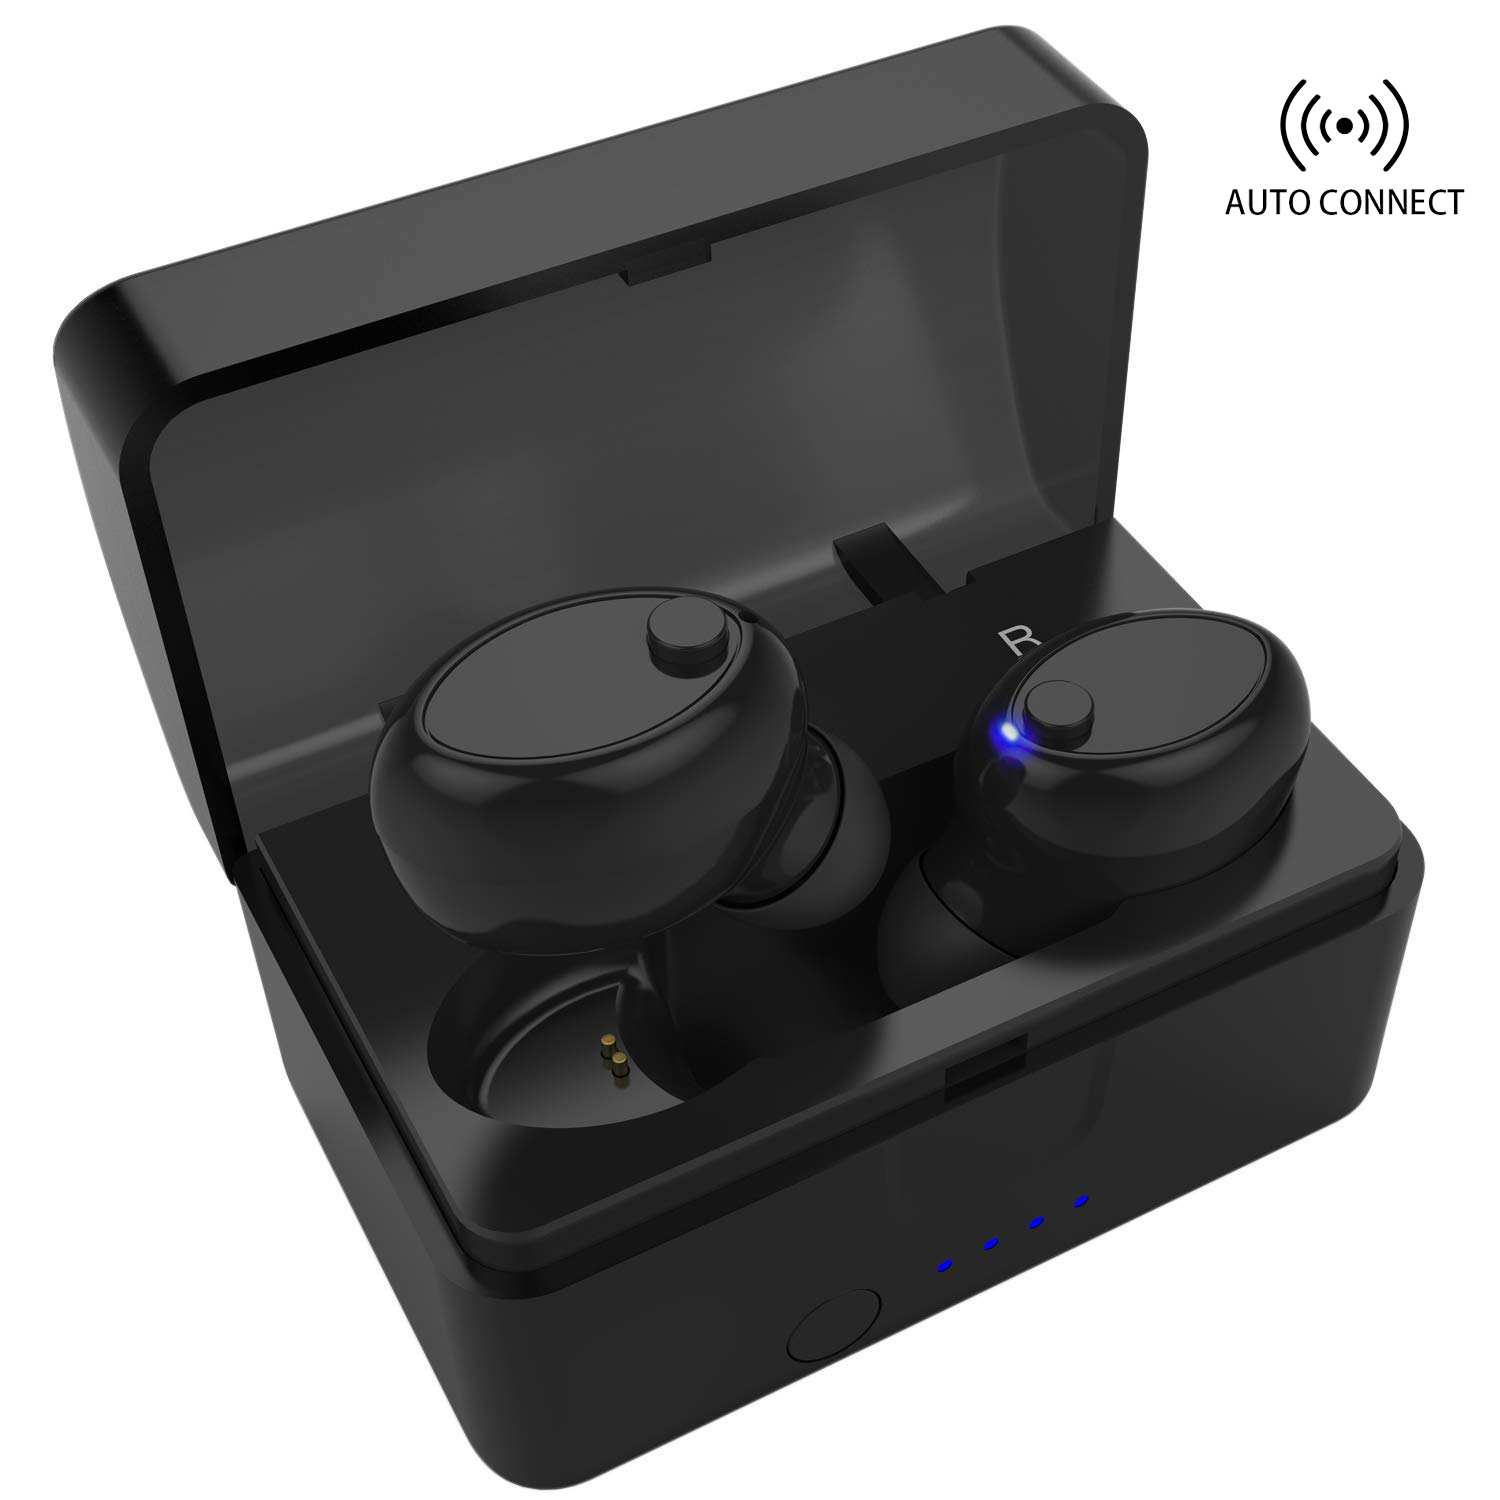 Wireless Earbuds, Bluetooth 5.0 Headphones Sports in-Ear TWS Stereo Mini Headset w/Mic IPX5 Waterproof Auto Pairing 20H Battery Portable Charging Case Noise Cancelling in Ear Earphones (New Upgraded)